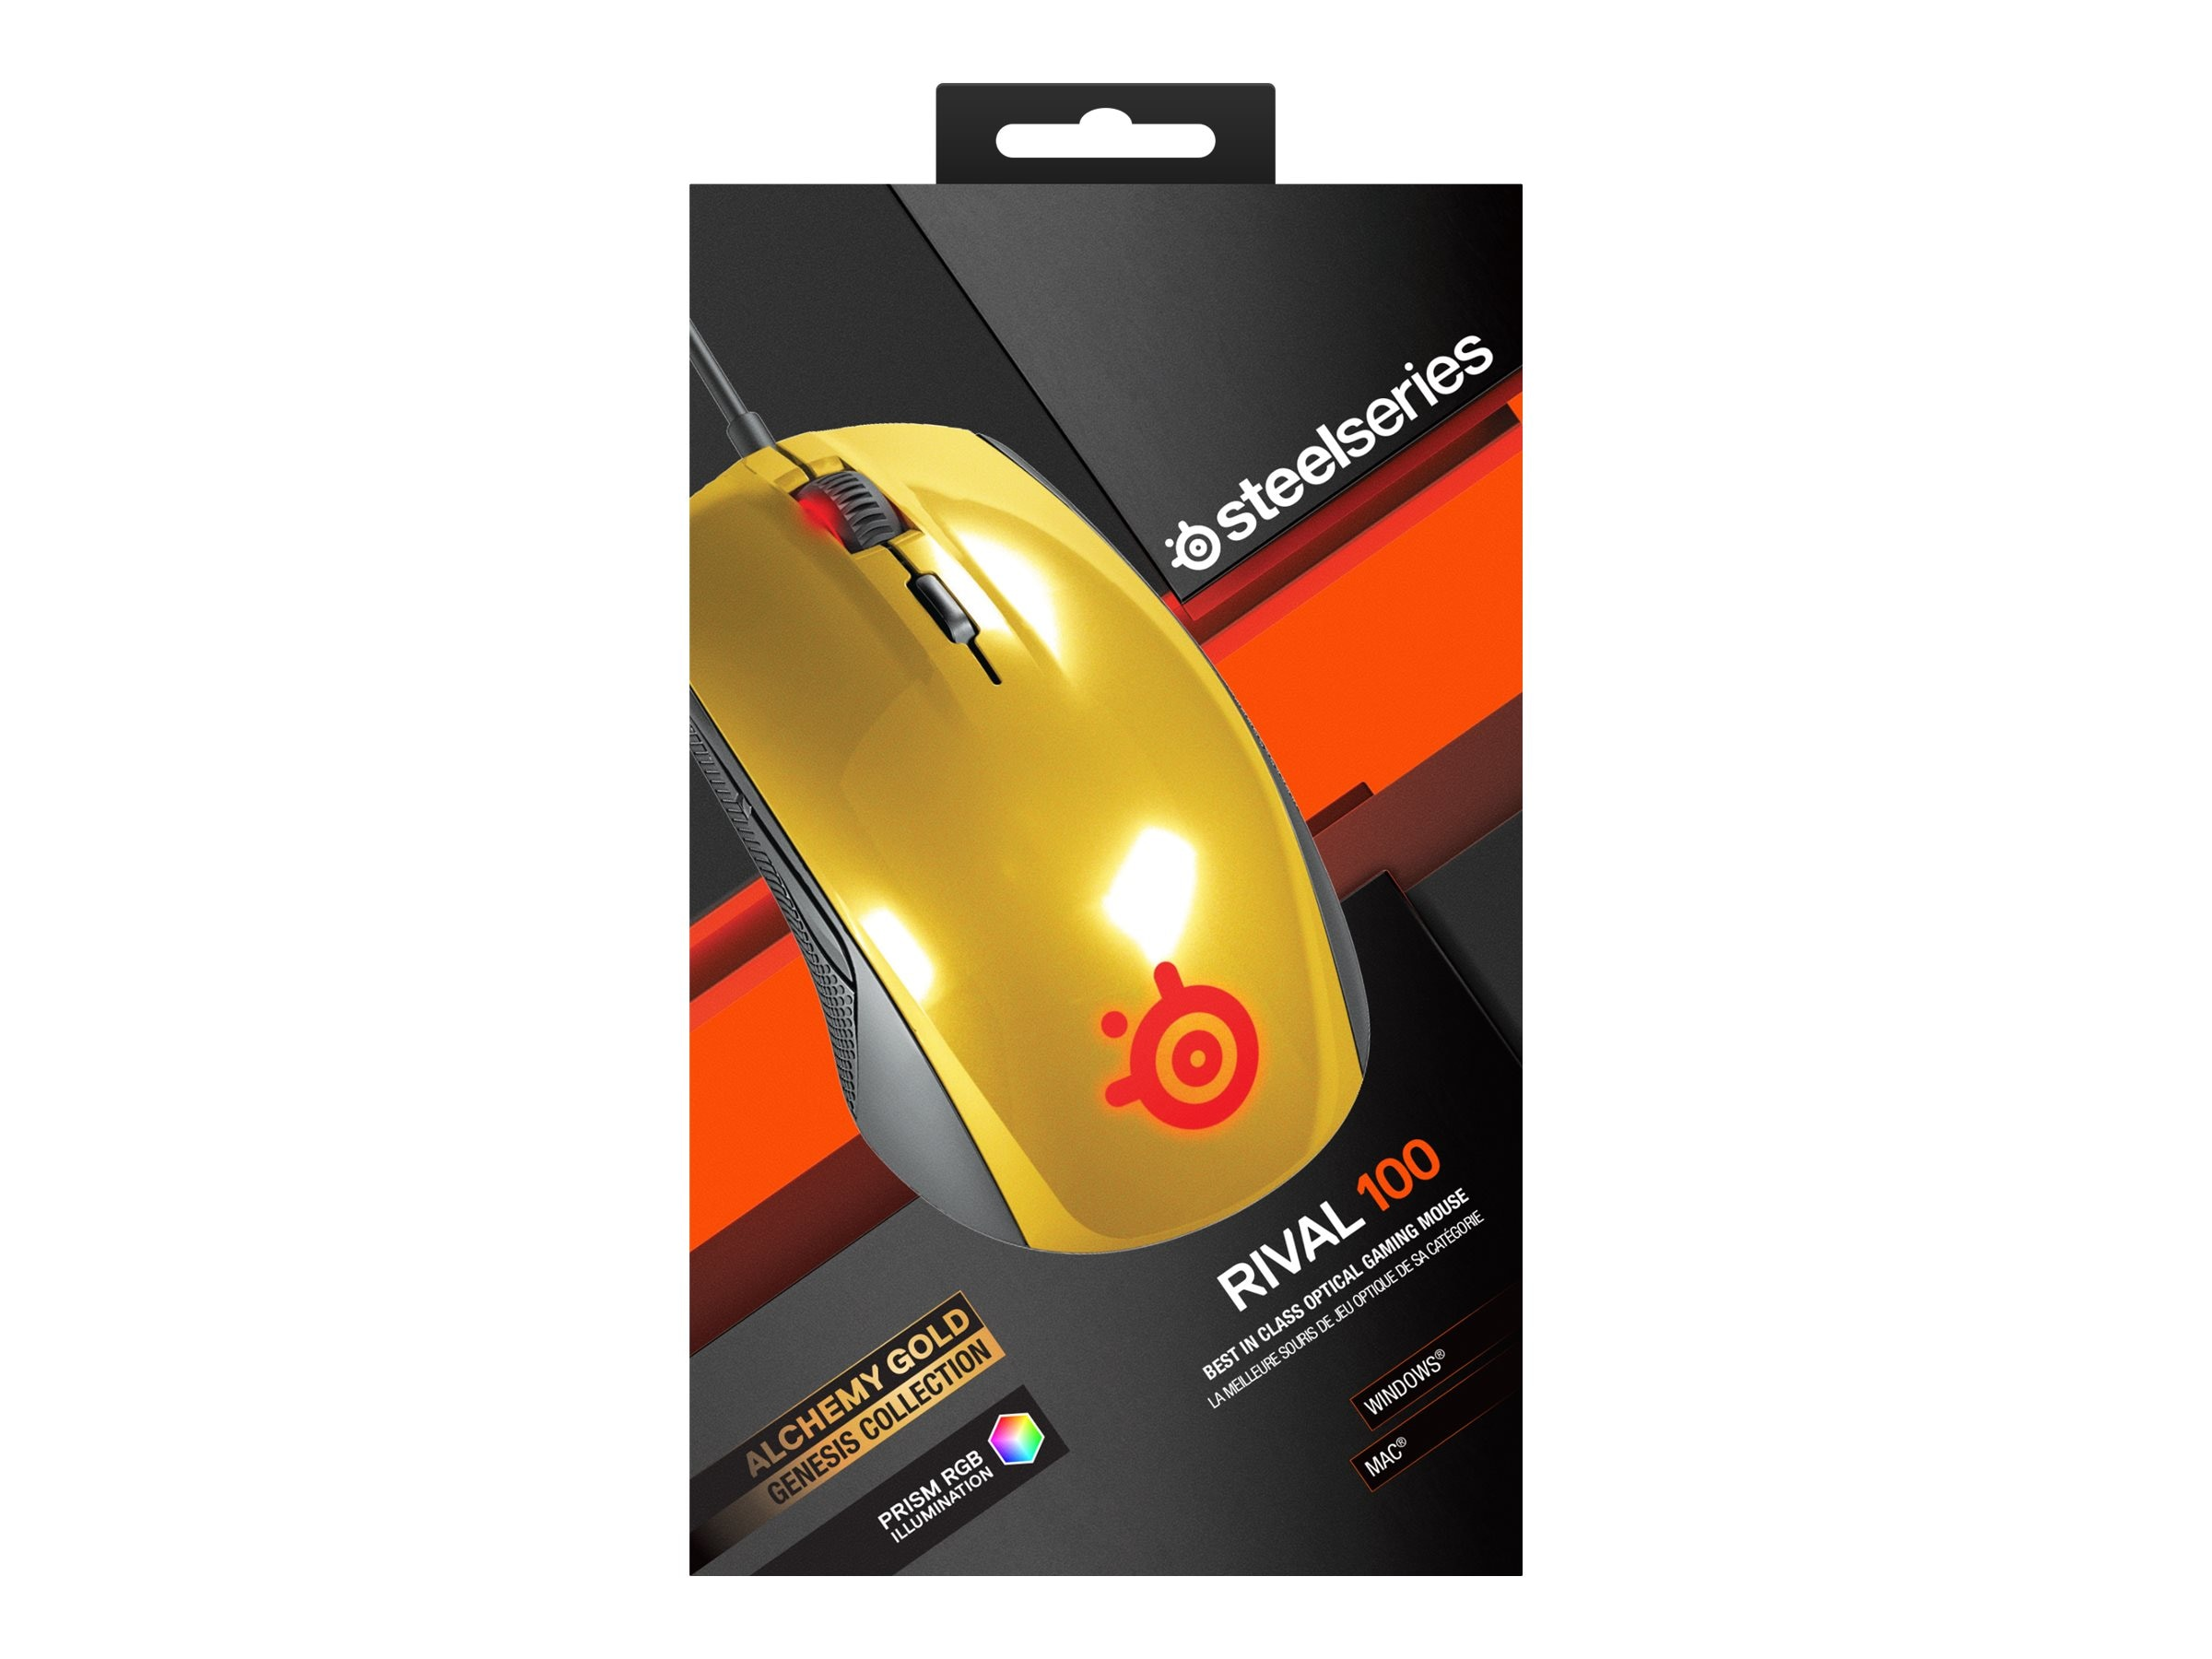 Steelseries Rival 100 Mouse, Alchemy Gold